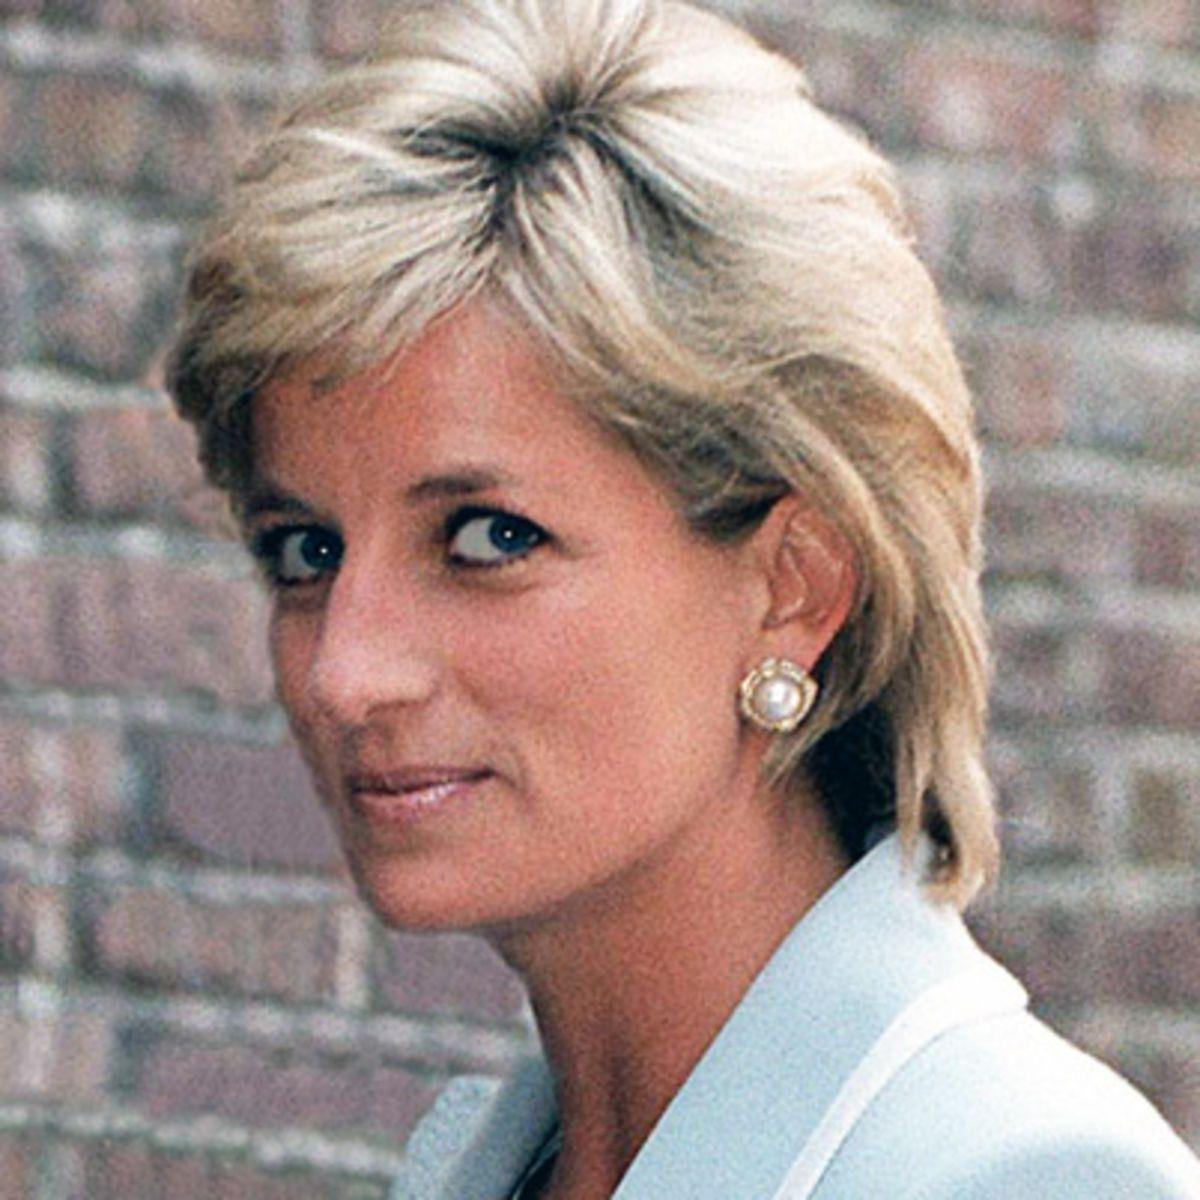 Princess Diana, Princess of Wales, was one of the most adored